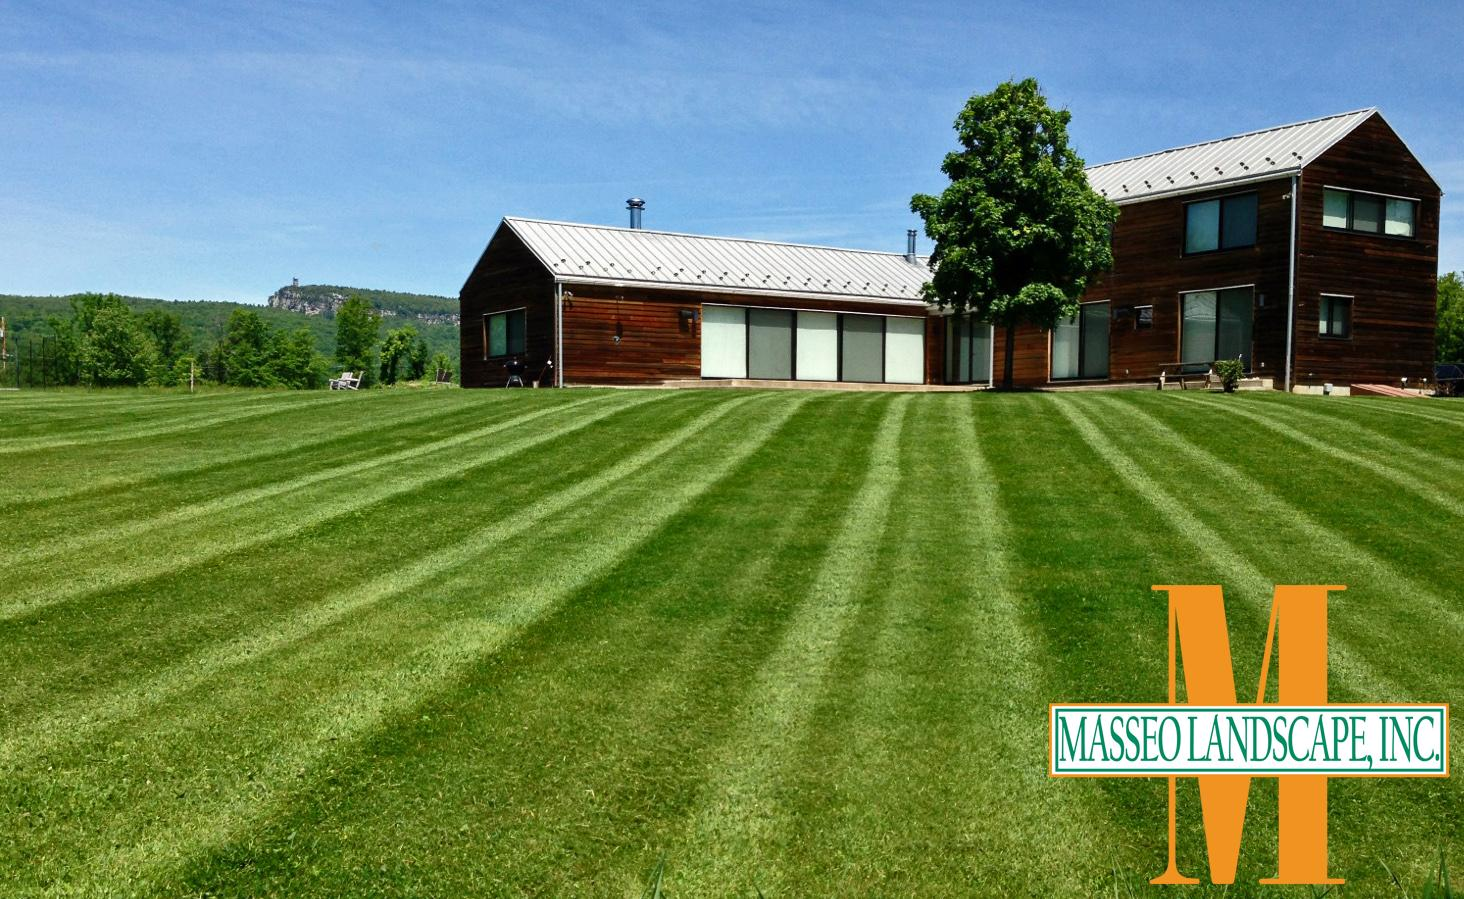 A recently mowed lawn in New Paltz, NY.